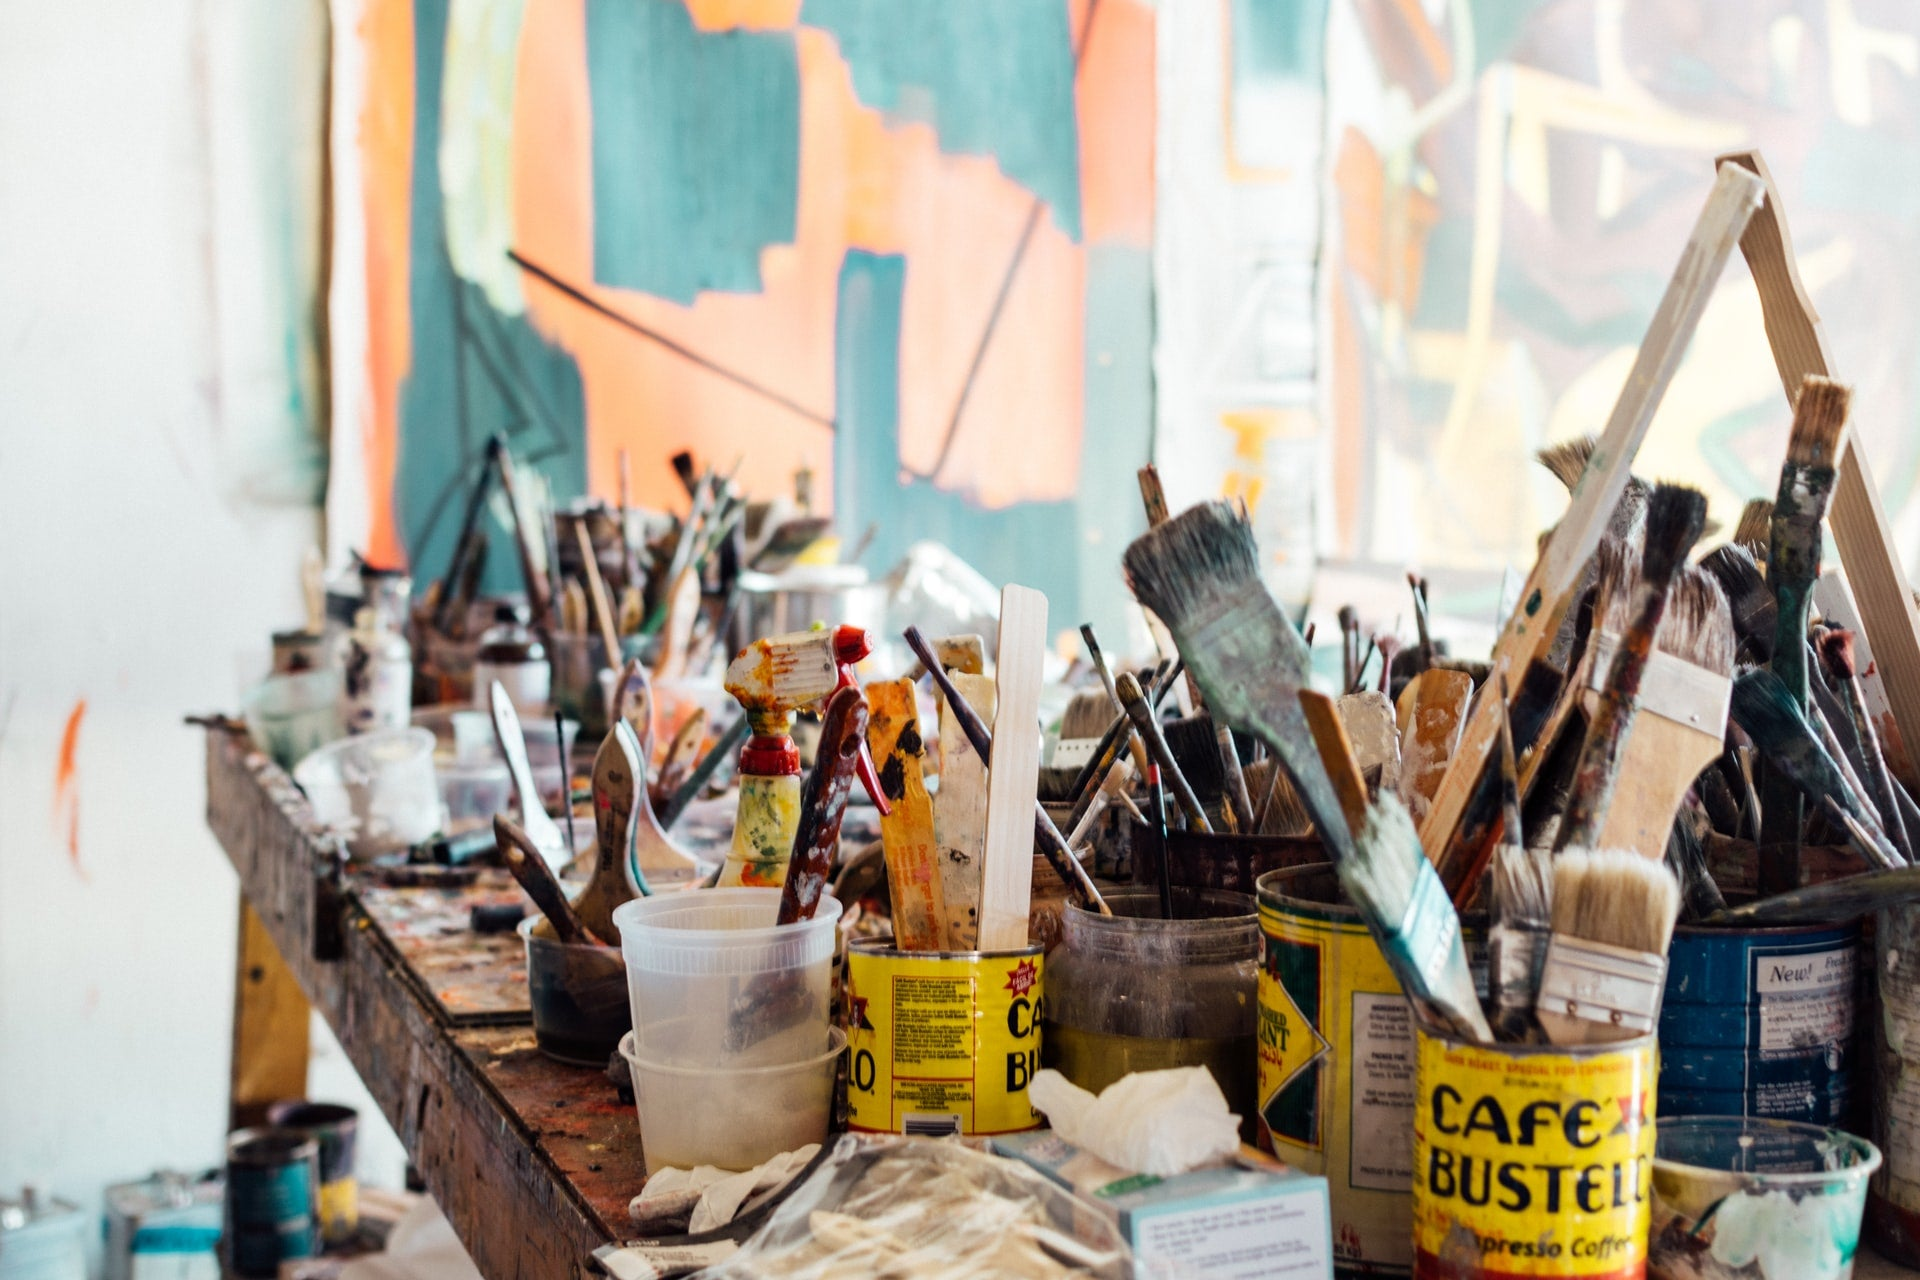 Image of messy artist studio with cans of paintbrushes filling the table